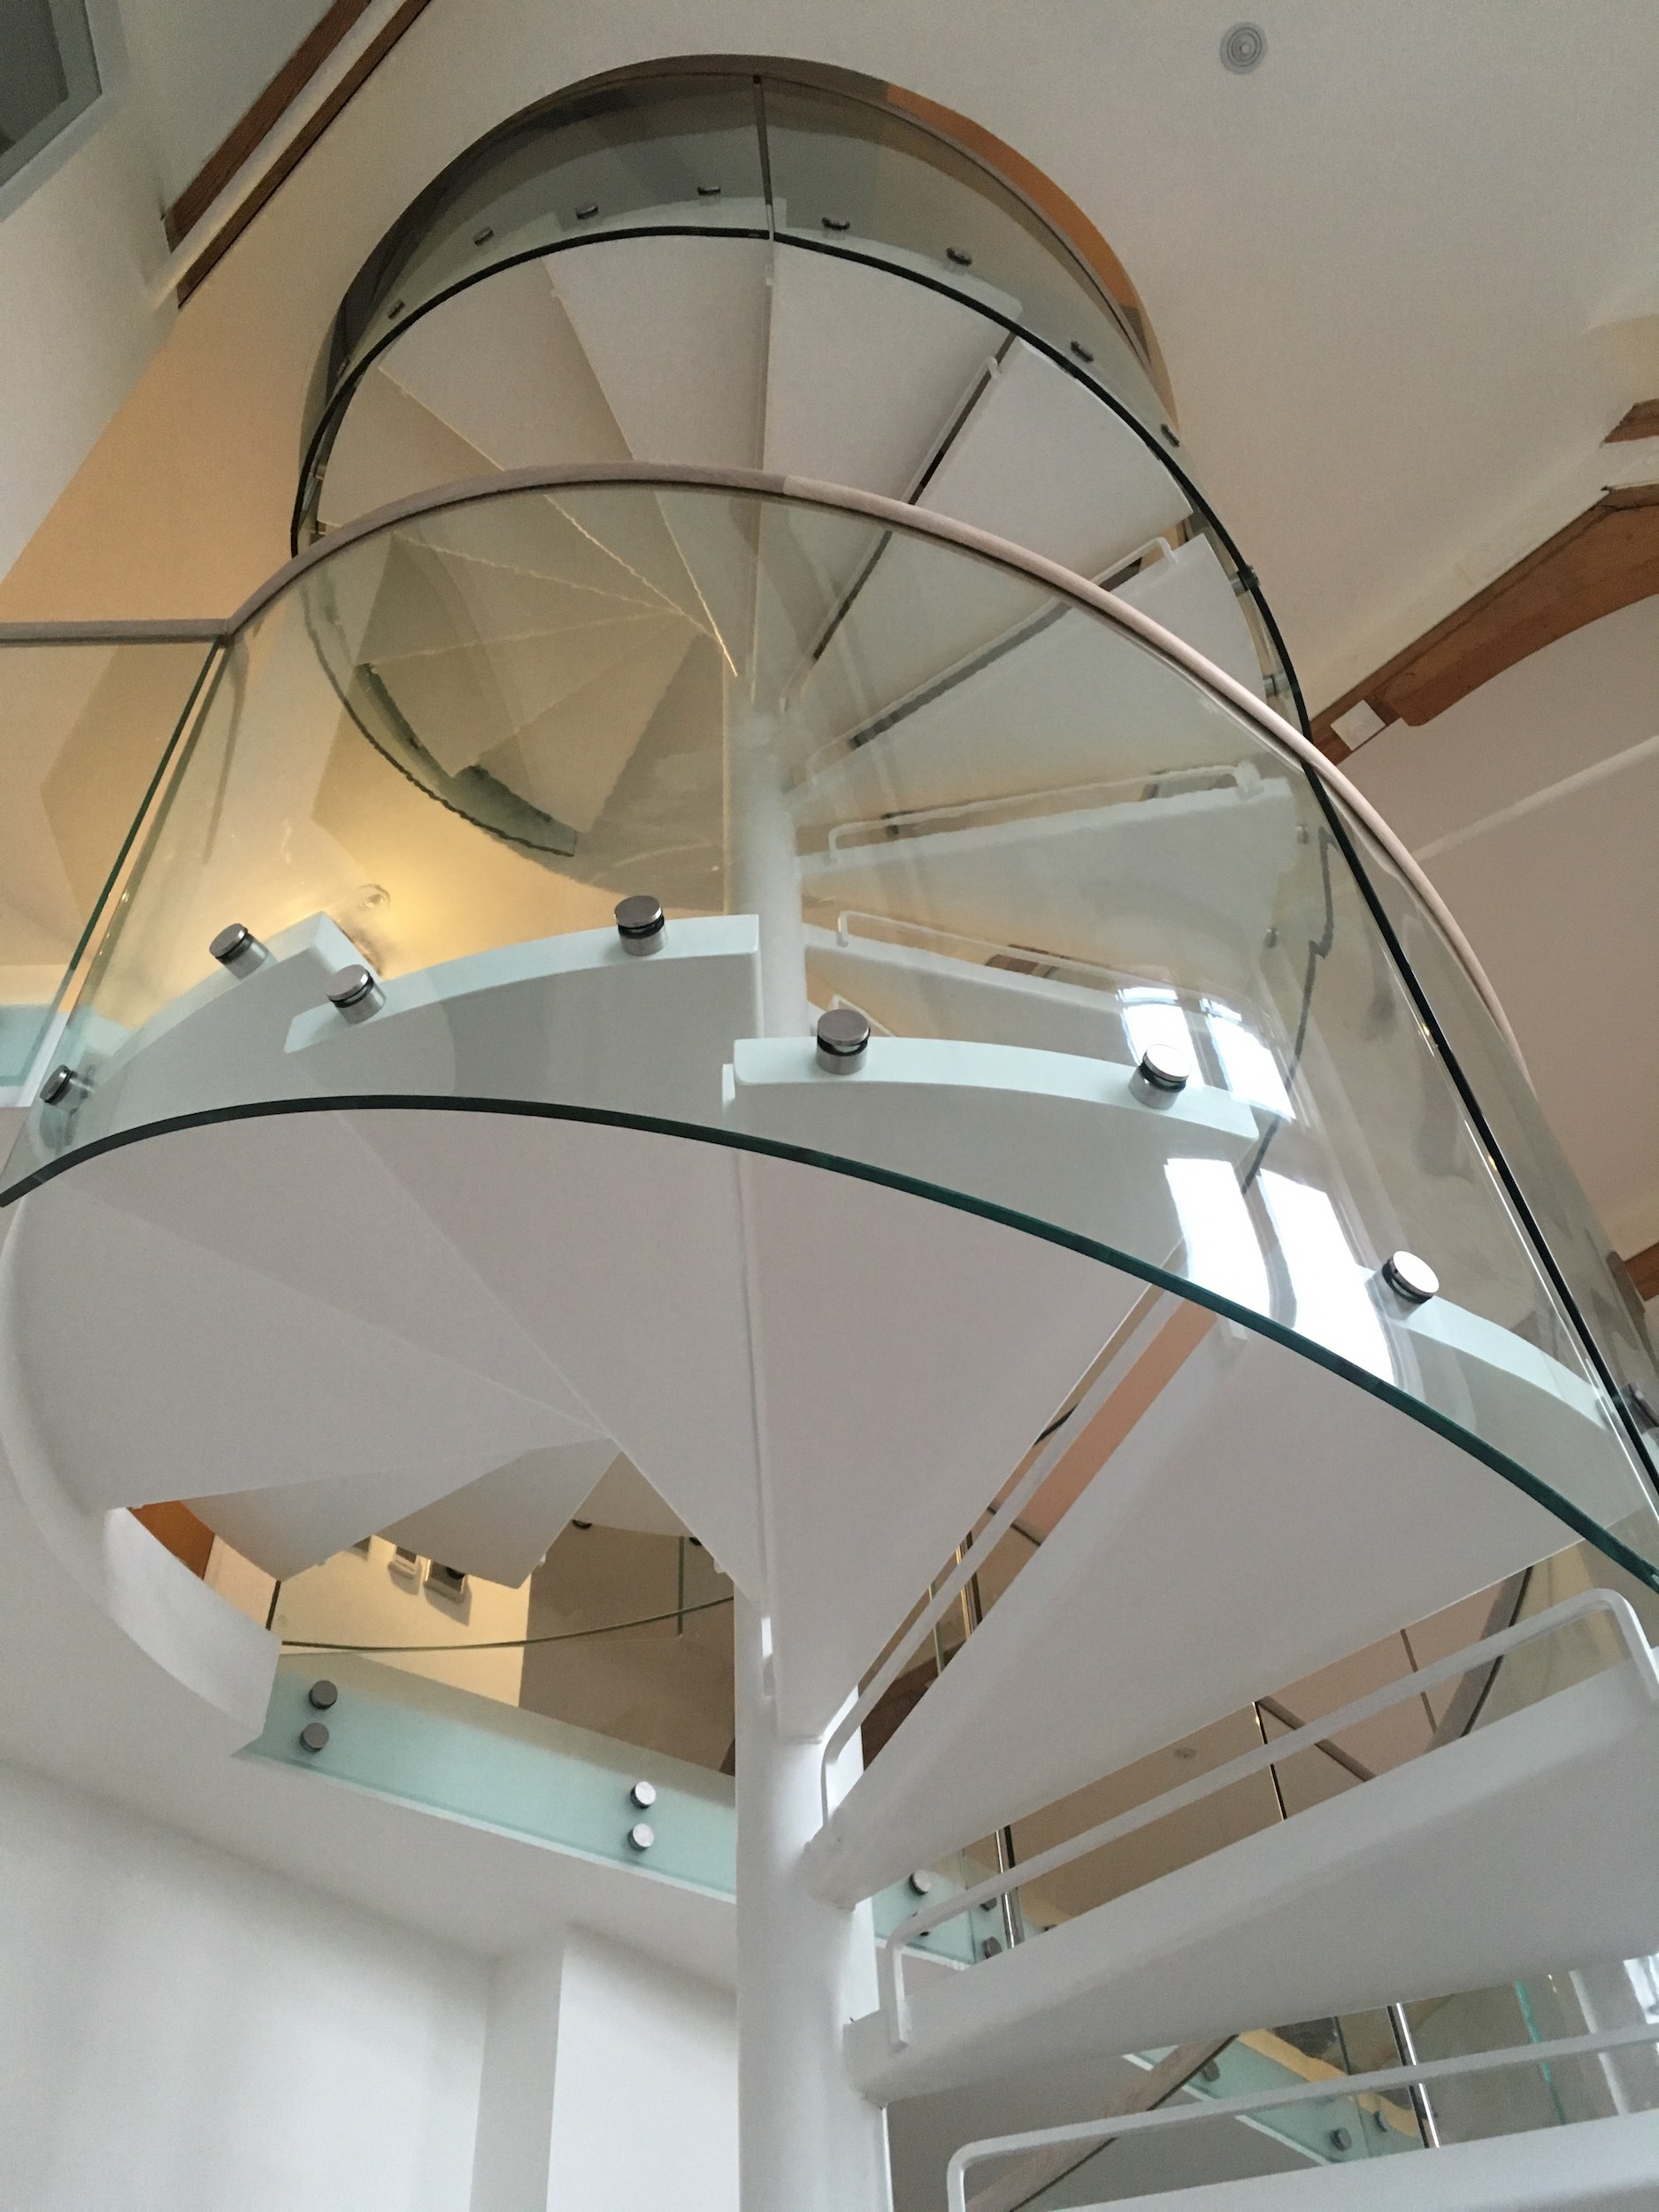 This Auckland spiral staircase is a minimalistic design